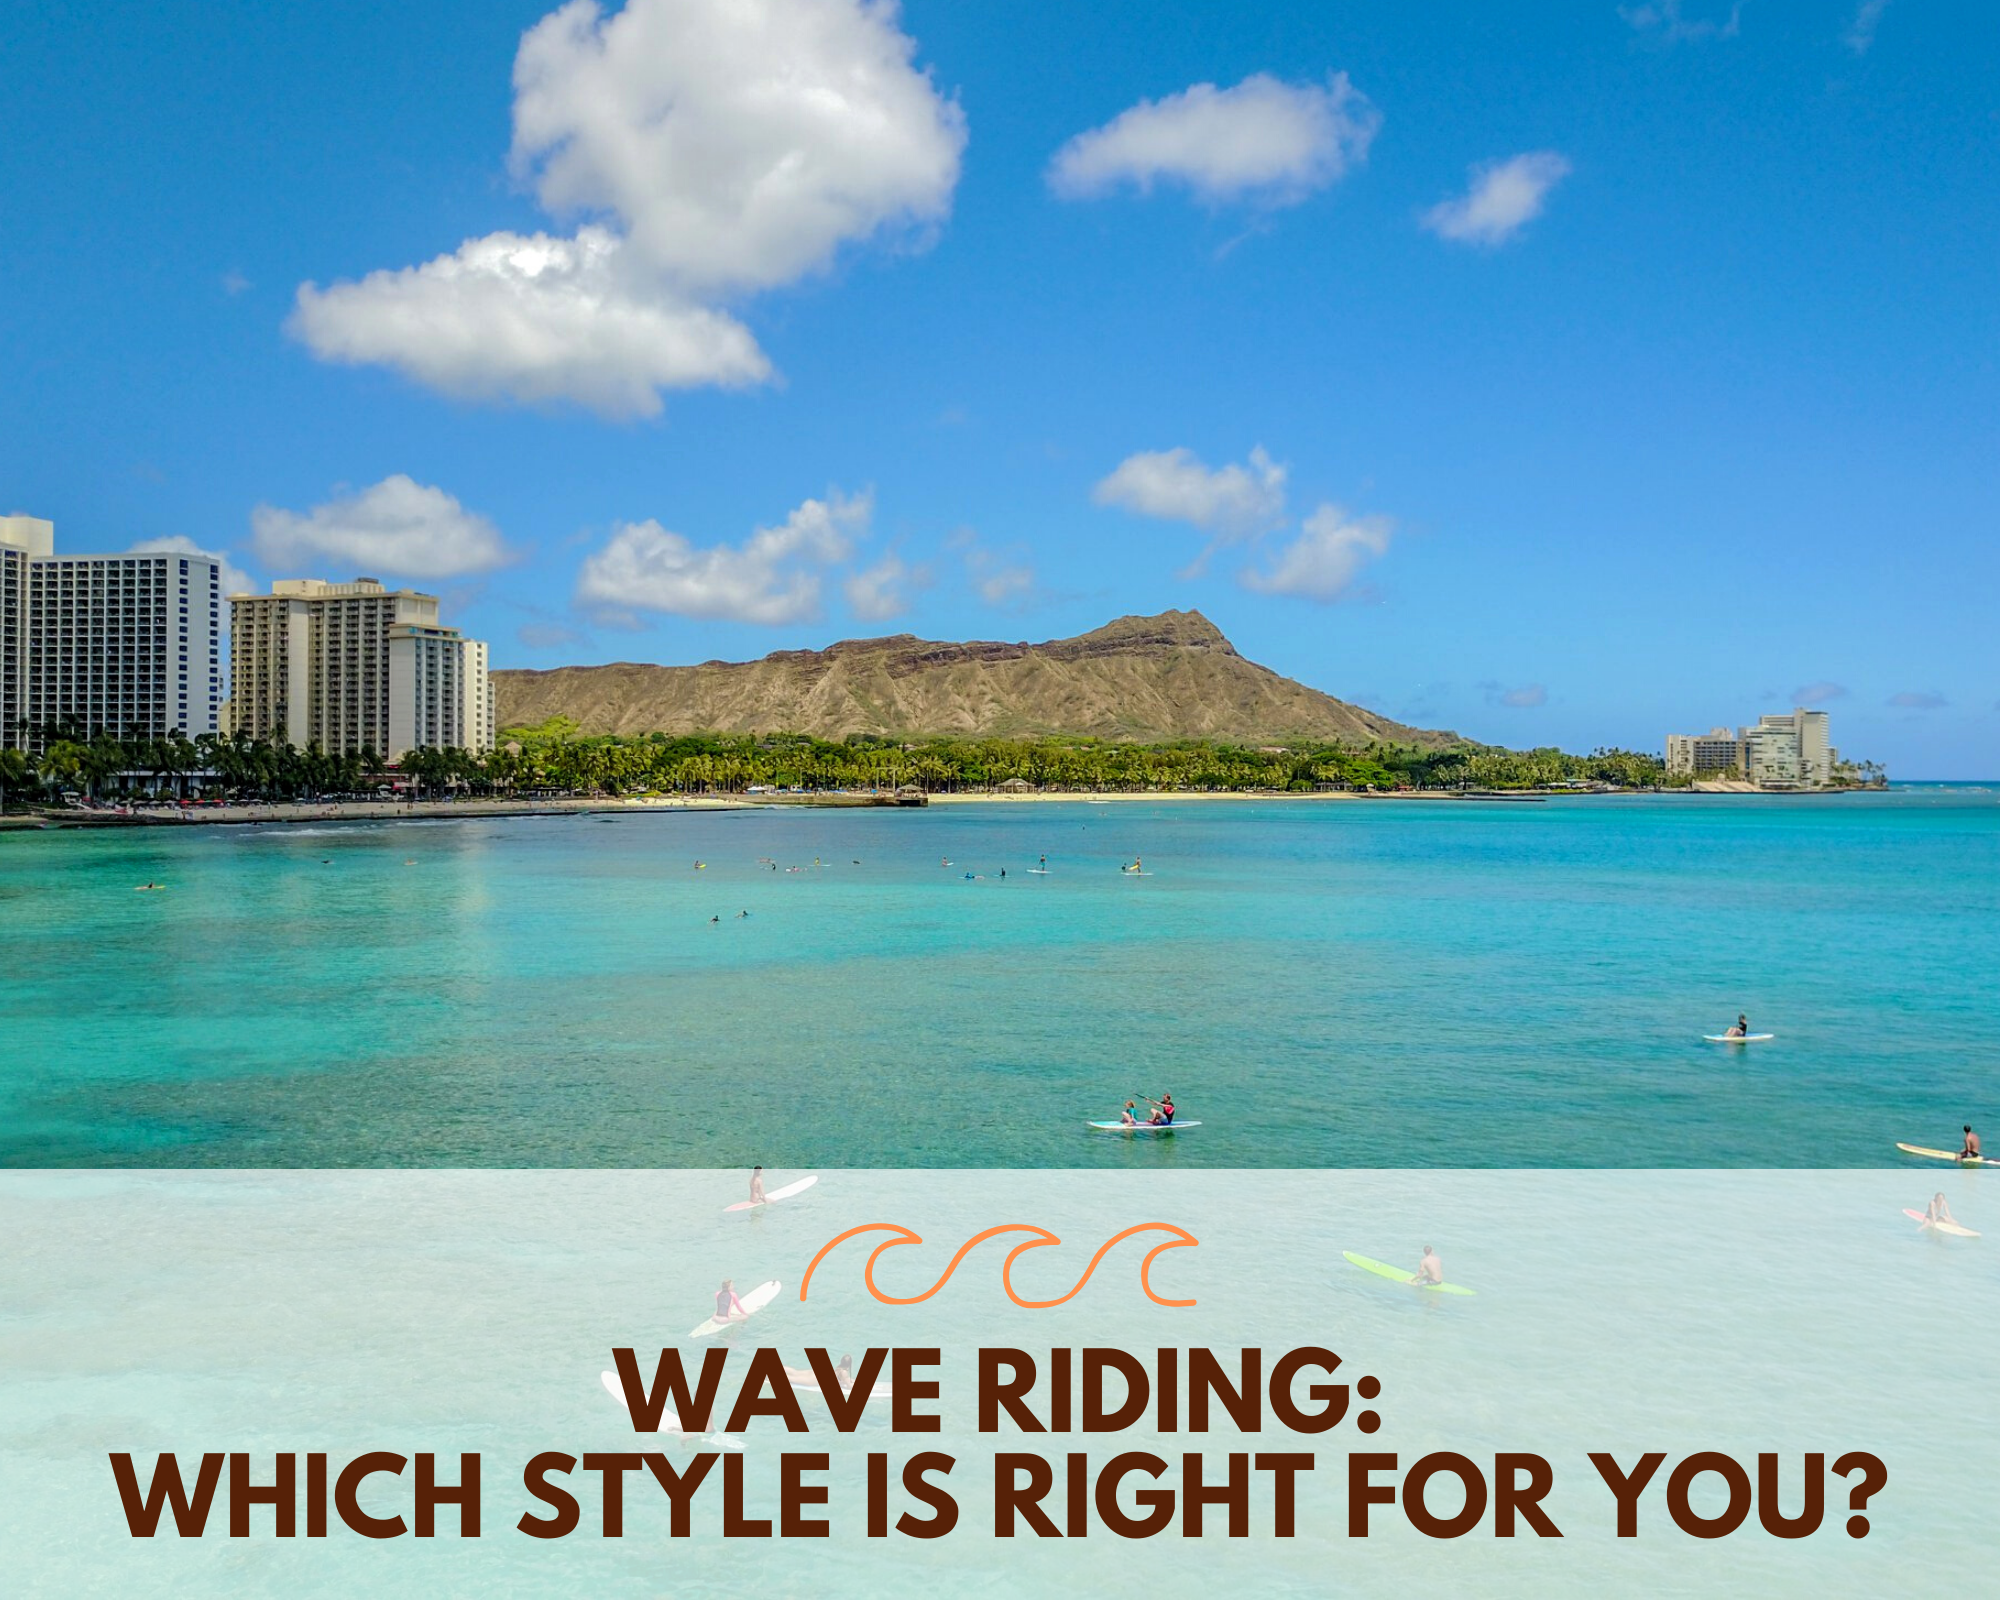 Wave Riding: Which Style is Right for You?